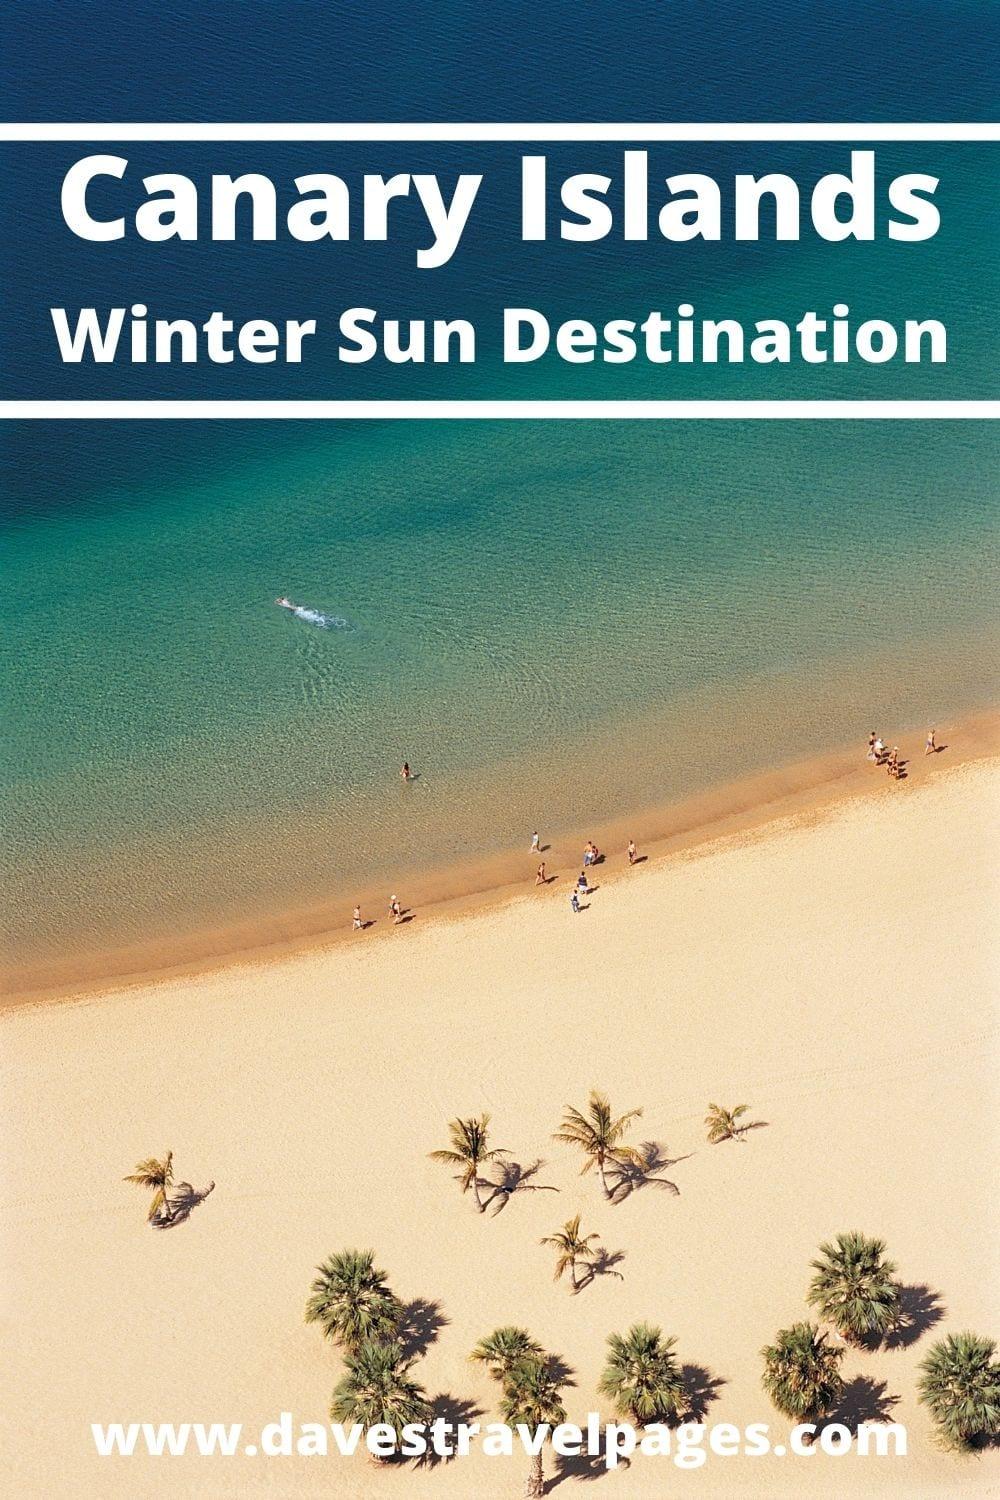 Canary Islands - Ideal Winter Sun Destination